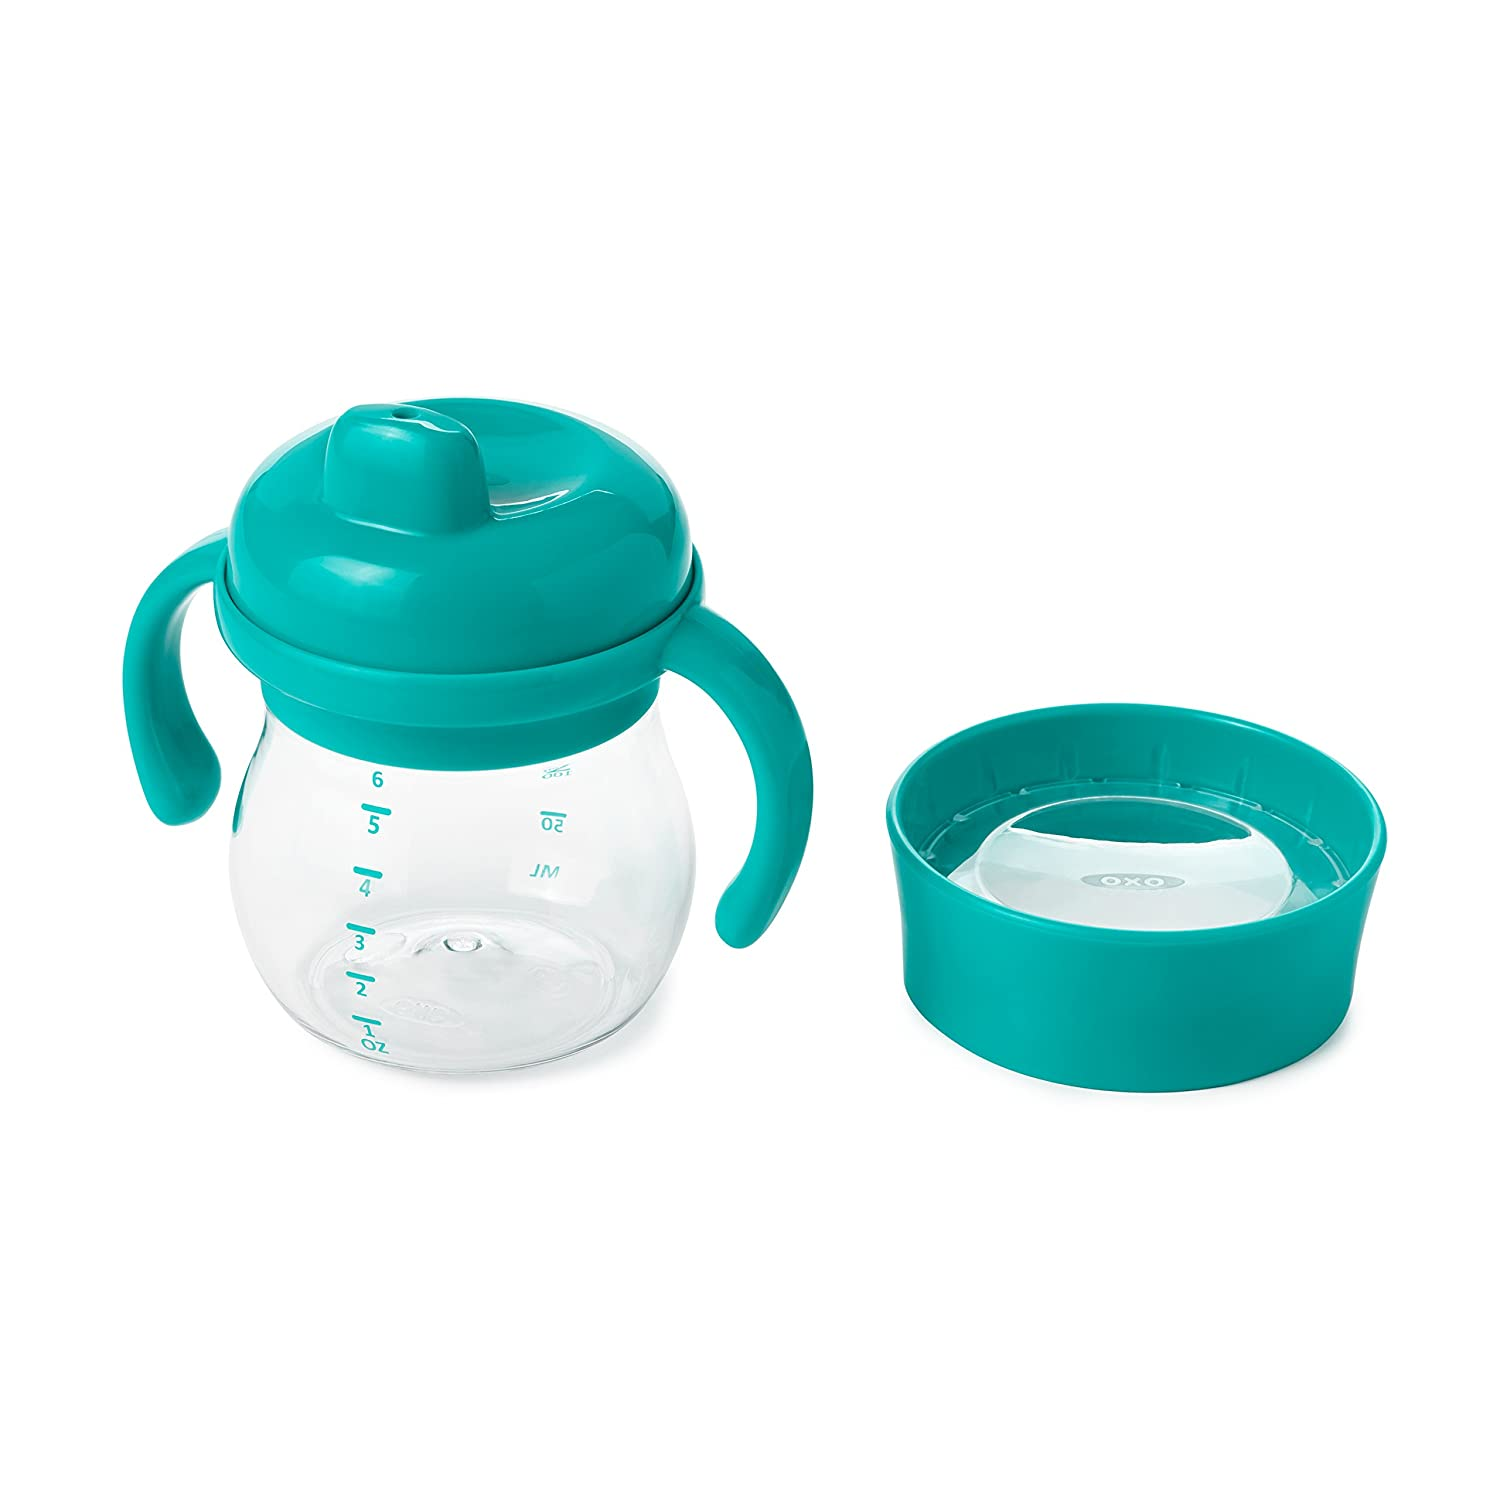 OXO Tot Transitions Sippy Cup Set, Teal, 6 Ounce 61134200